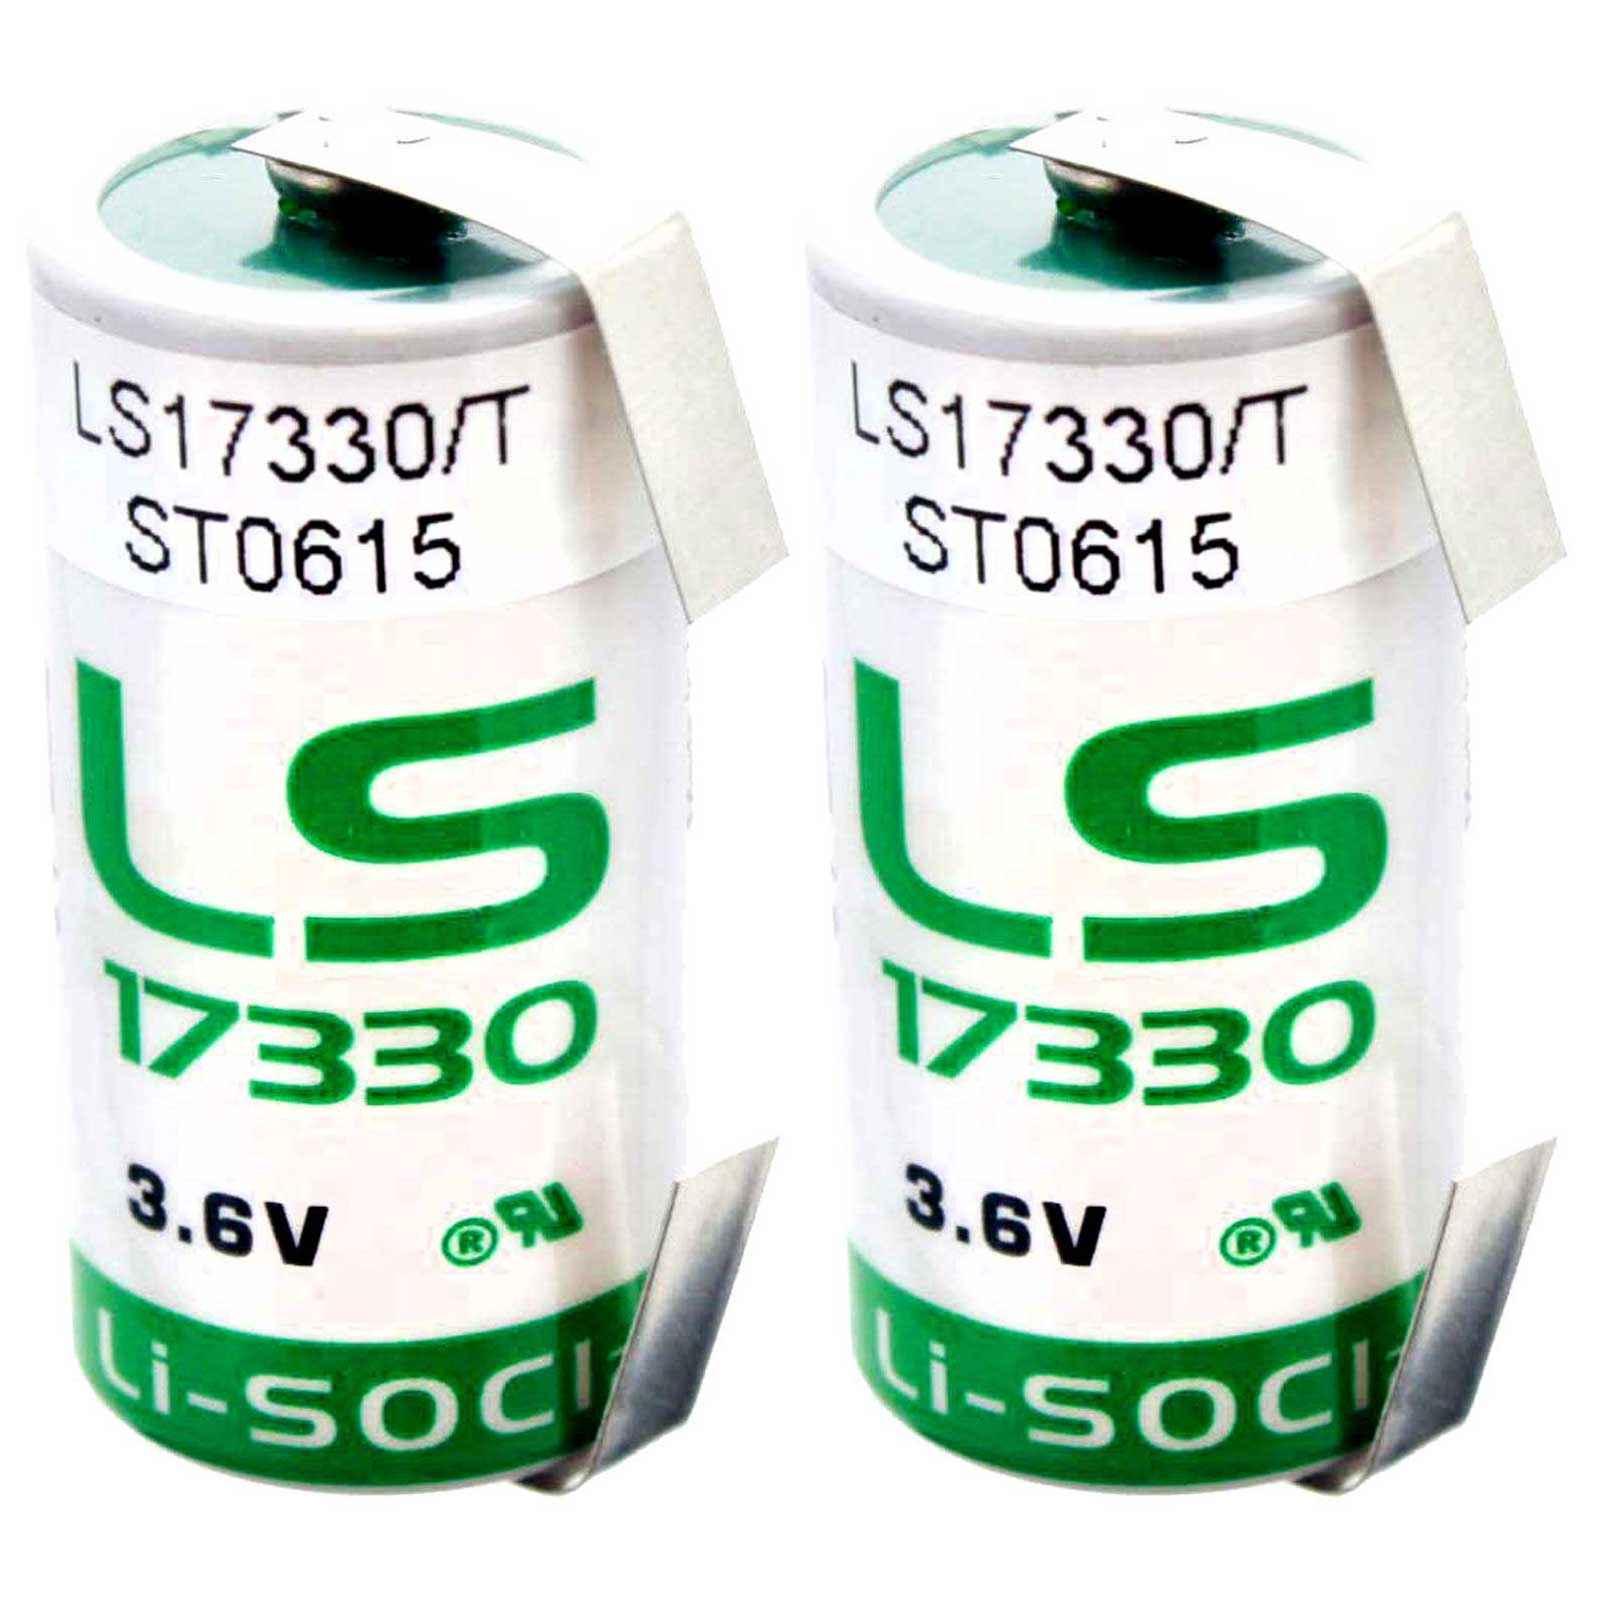 RFID Tracking Locator Beacons Intrusion Sensors Unattended Sensors Invisible Fencing 2x SAFT LS33600/_TAB Size D 3.6V 1700mAh Lithium Battery for Smart Munitions Fleet Monitoring